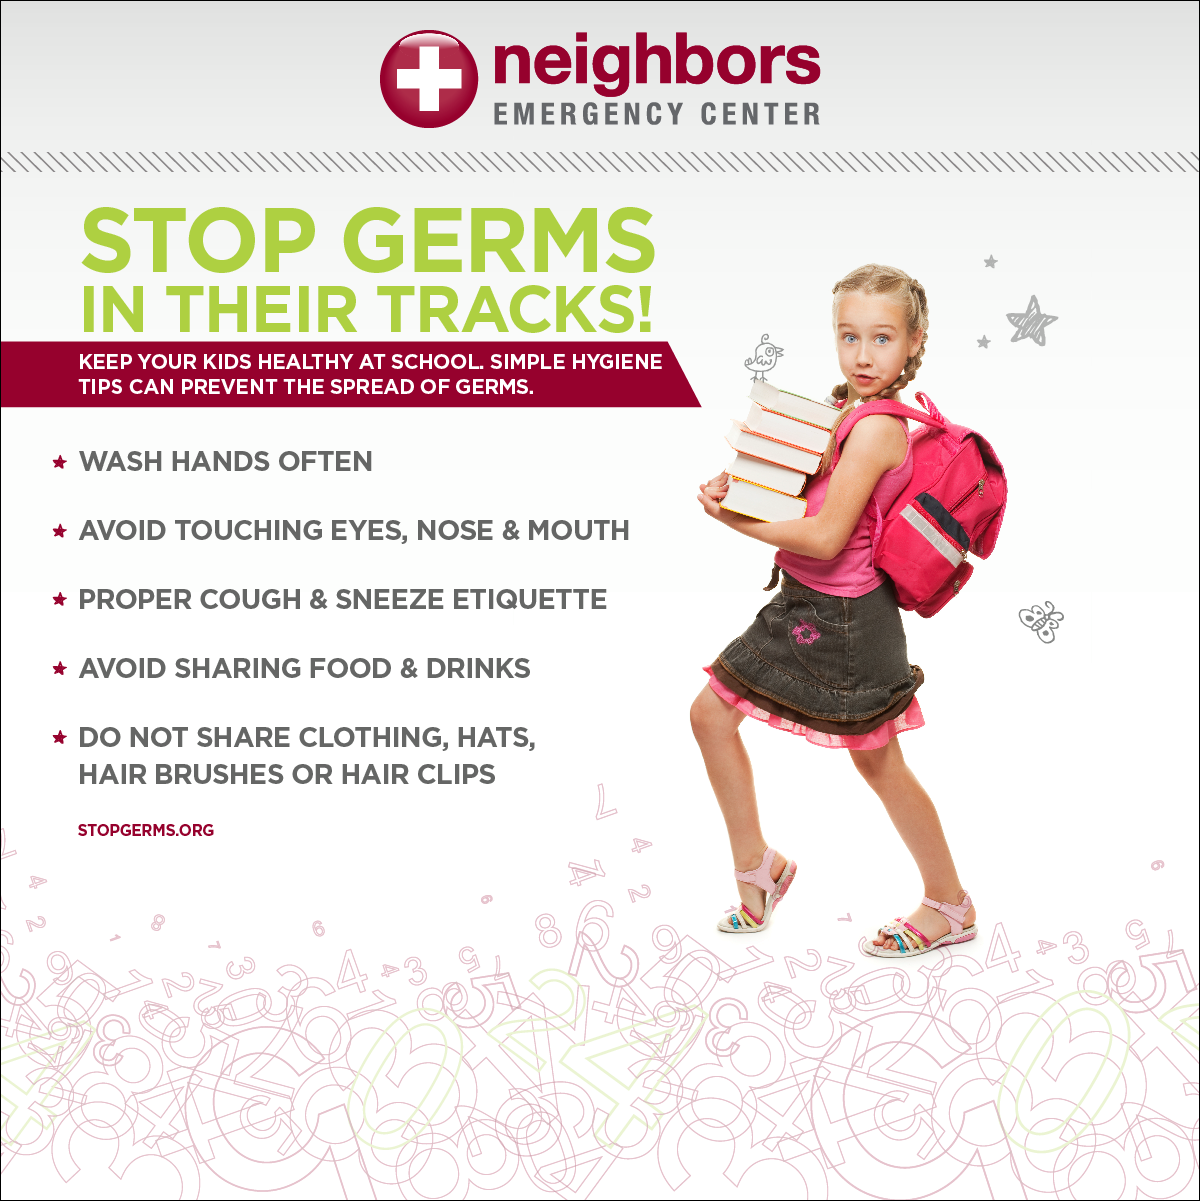 Make Sure Your Kids Are Staying Healthy This Schoolyear